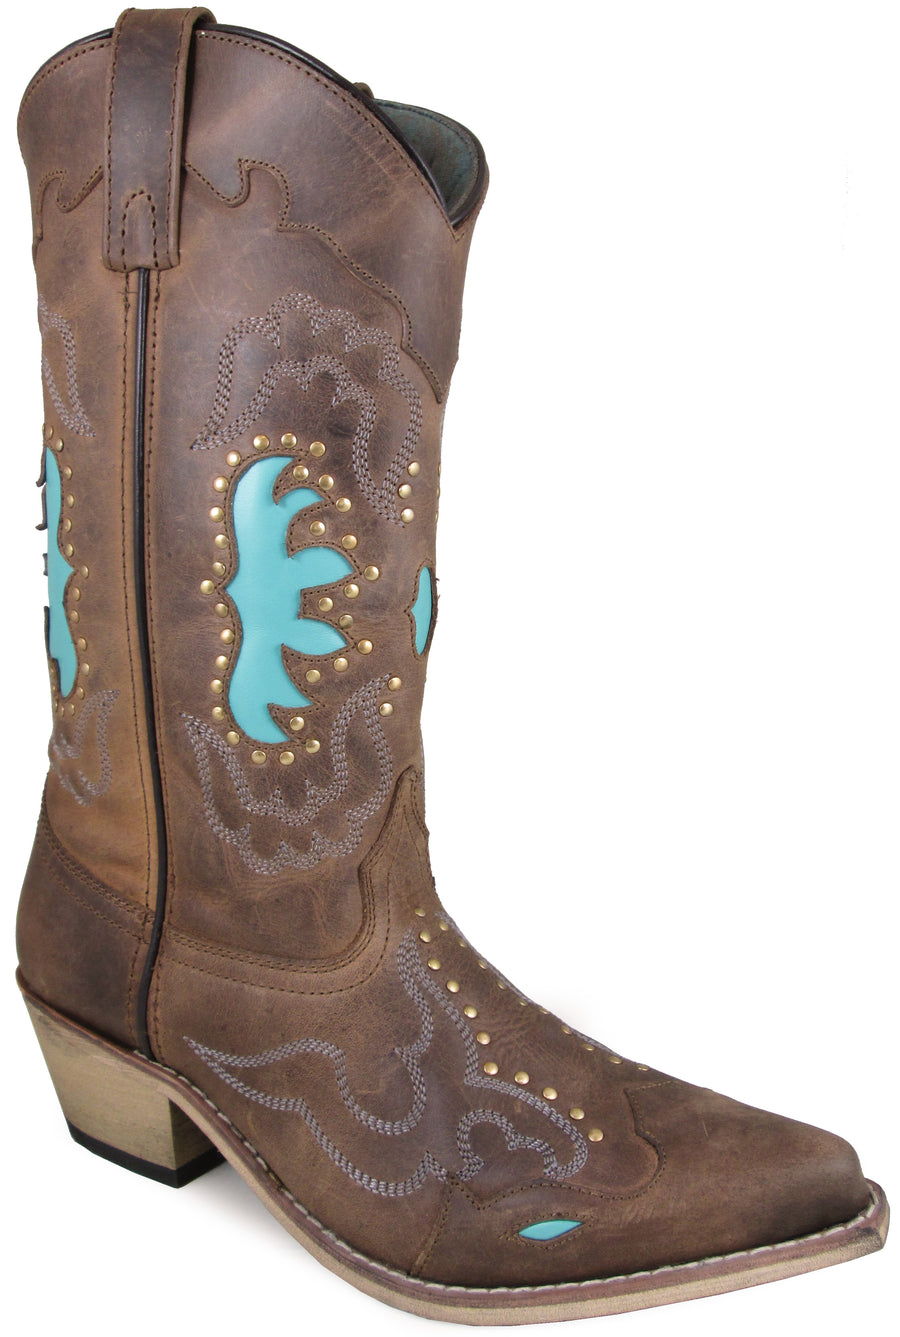 Smoky Mountain Women's Moon Bay Studded Design Snip Toe Brown Distress/Turquoise Boots